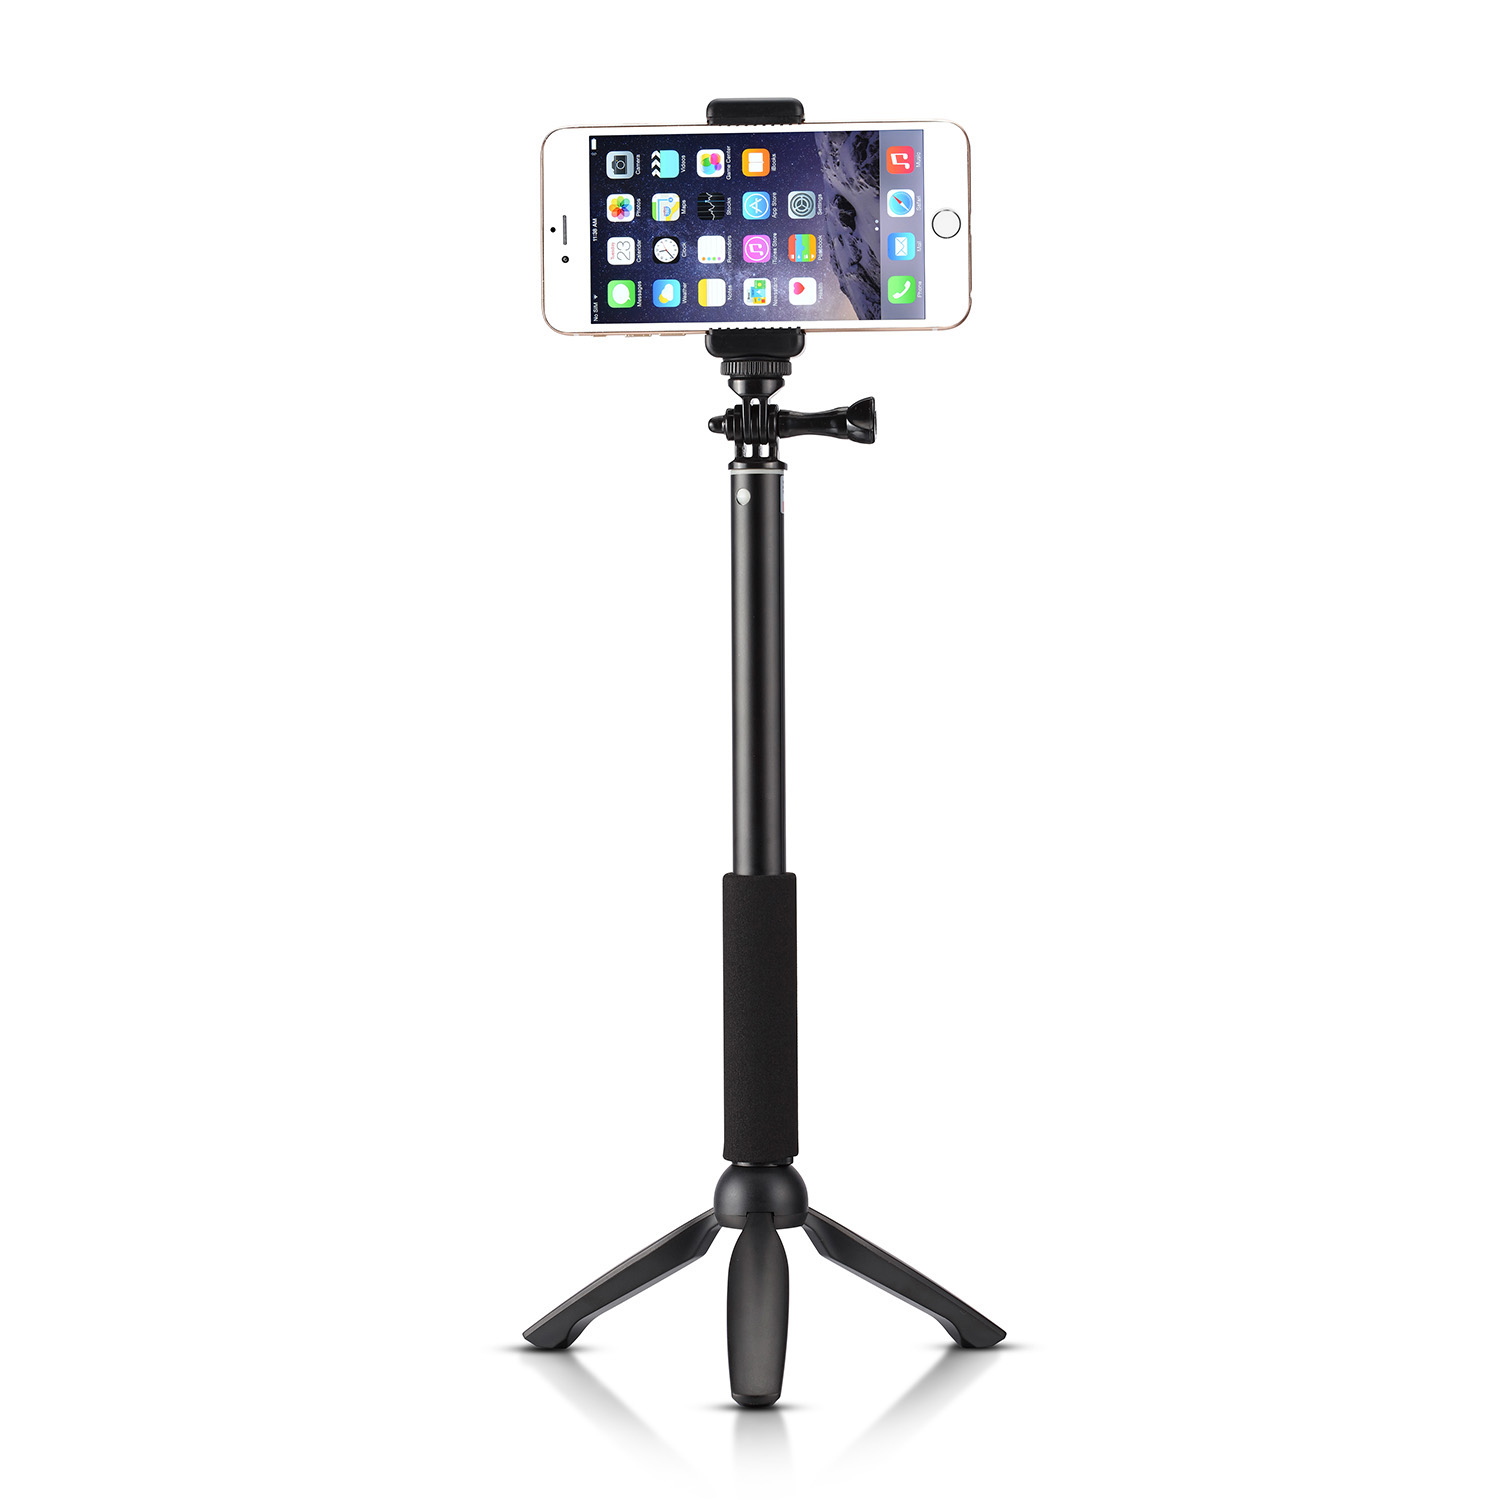 accmor rhythm pro bluetooth selfie stick with mini tripod stand accmor accmor. Black Bedroom Furniture Sets. Home Design Ideas